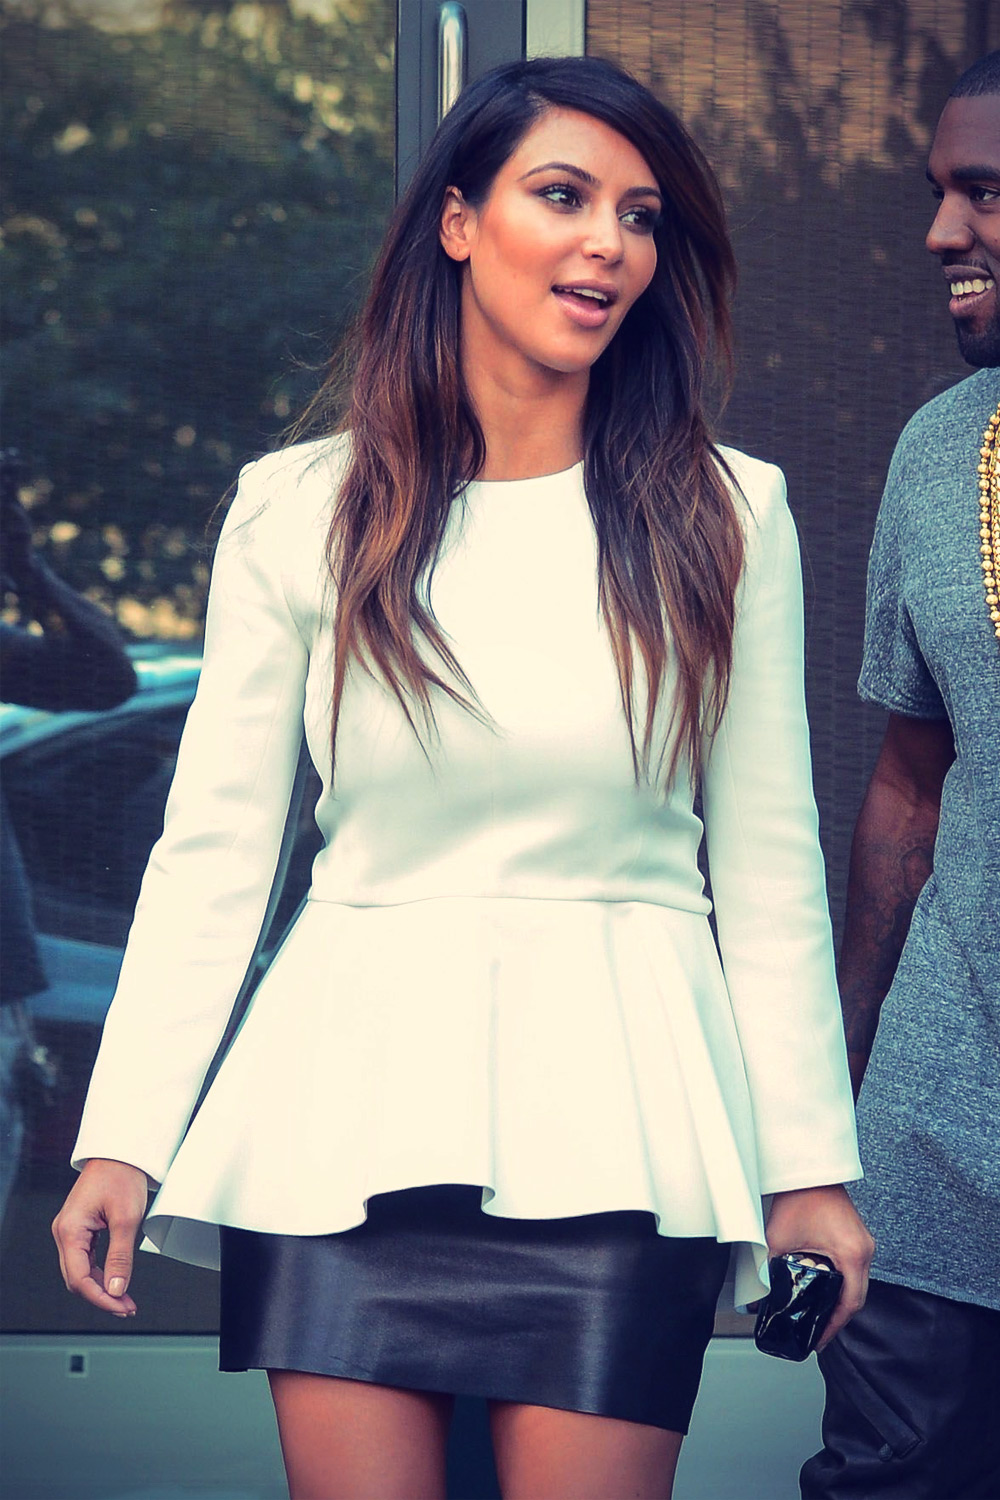 Kim Kardashian leaving an apartment building